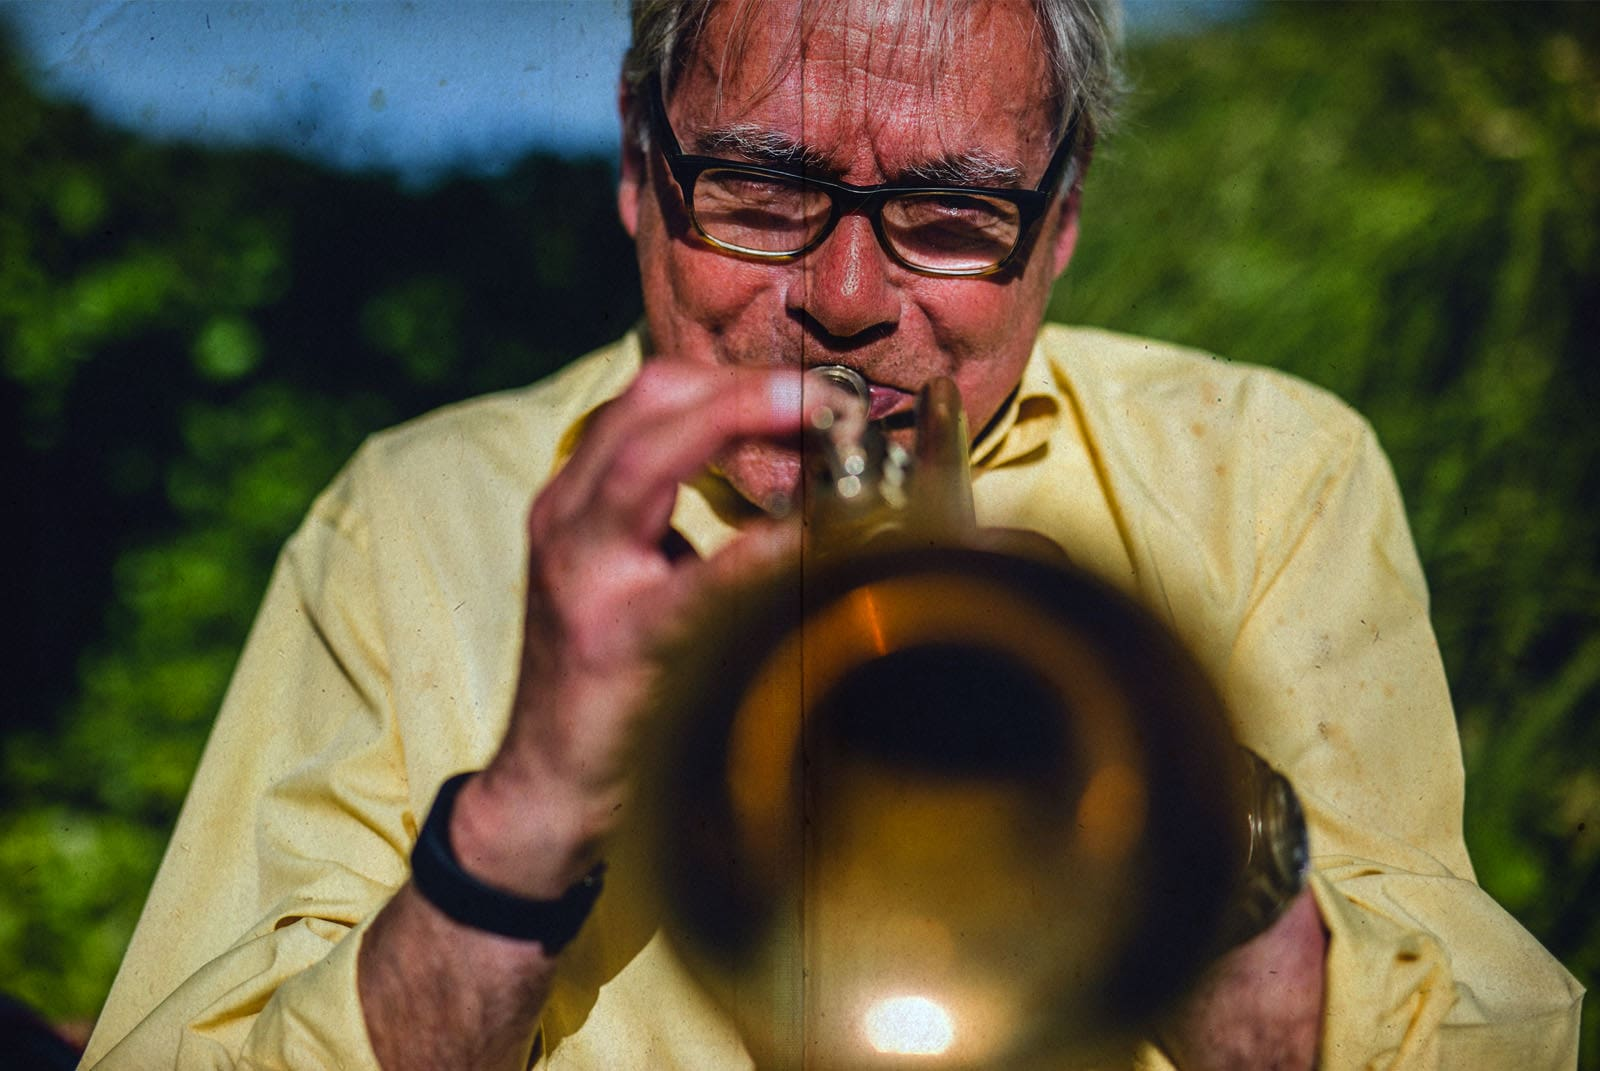 trumpeter portrait in a wedding